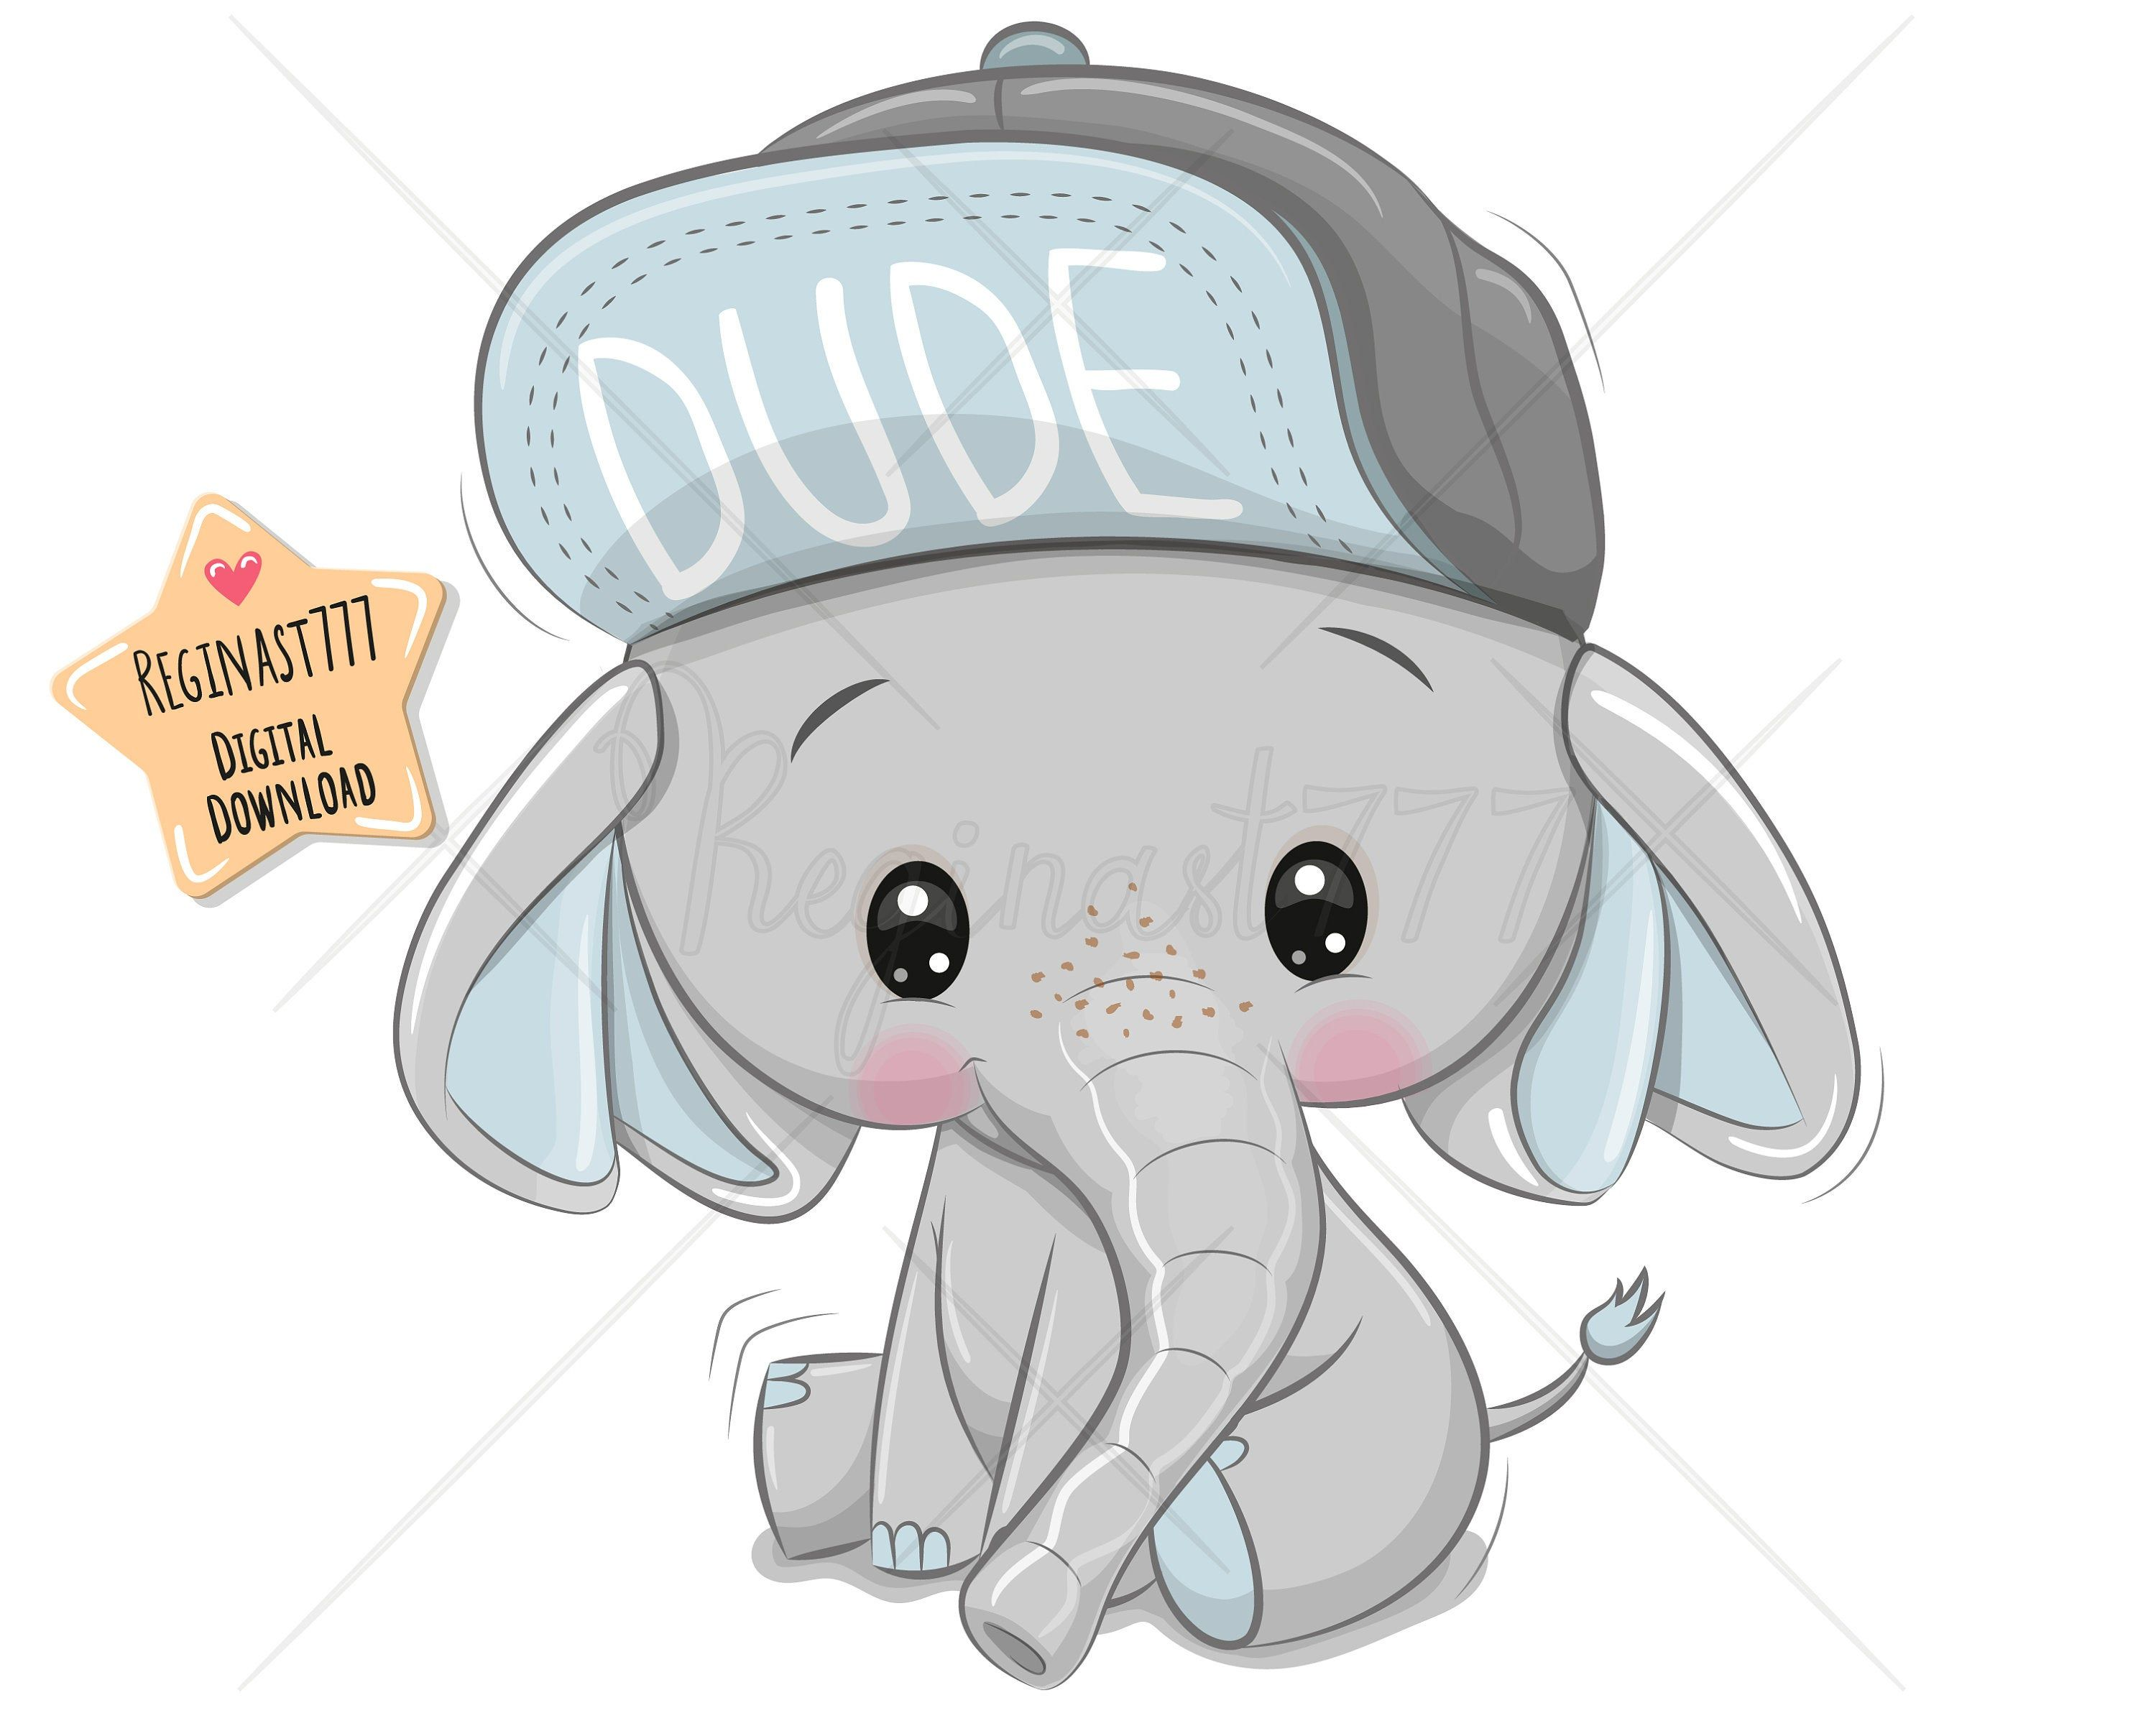 Cute Elephant Png Digital Download Clipart Adorable Etsy In 2020 Baby Elephant Drawing Baby Elephant Cartoon Baby Elephant Discover 233 free baby elephant png images with transparent backgrounds. cute elephant png digital download